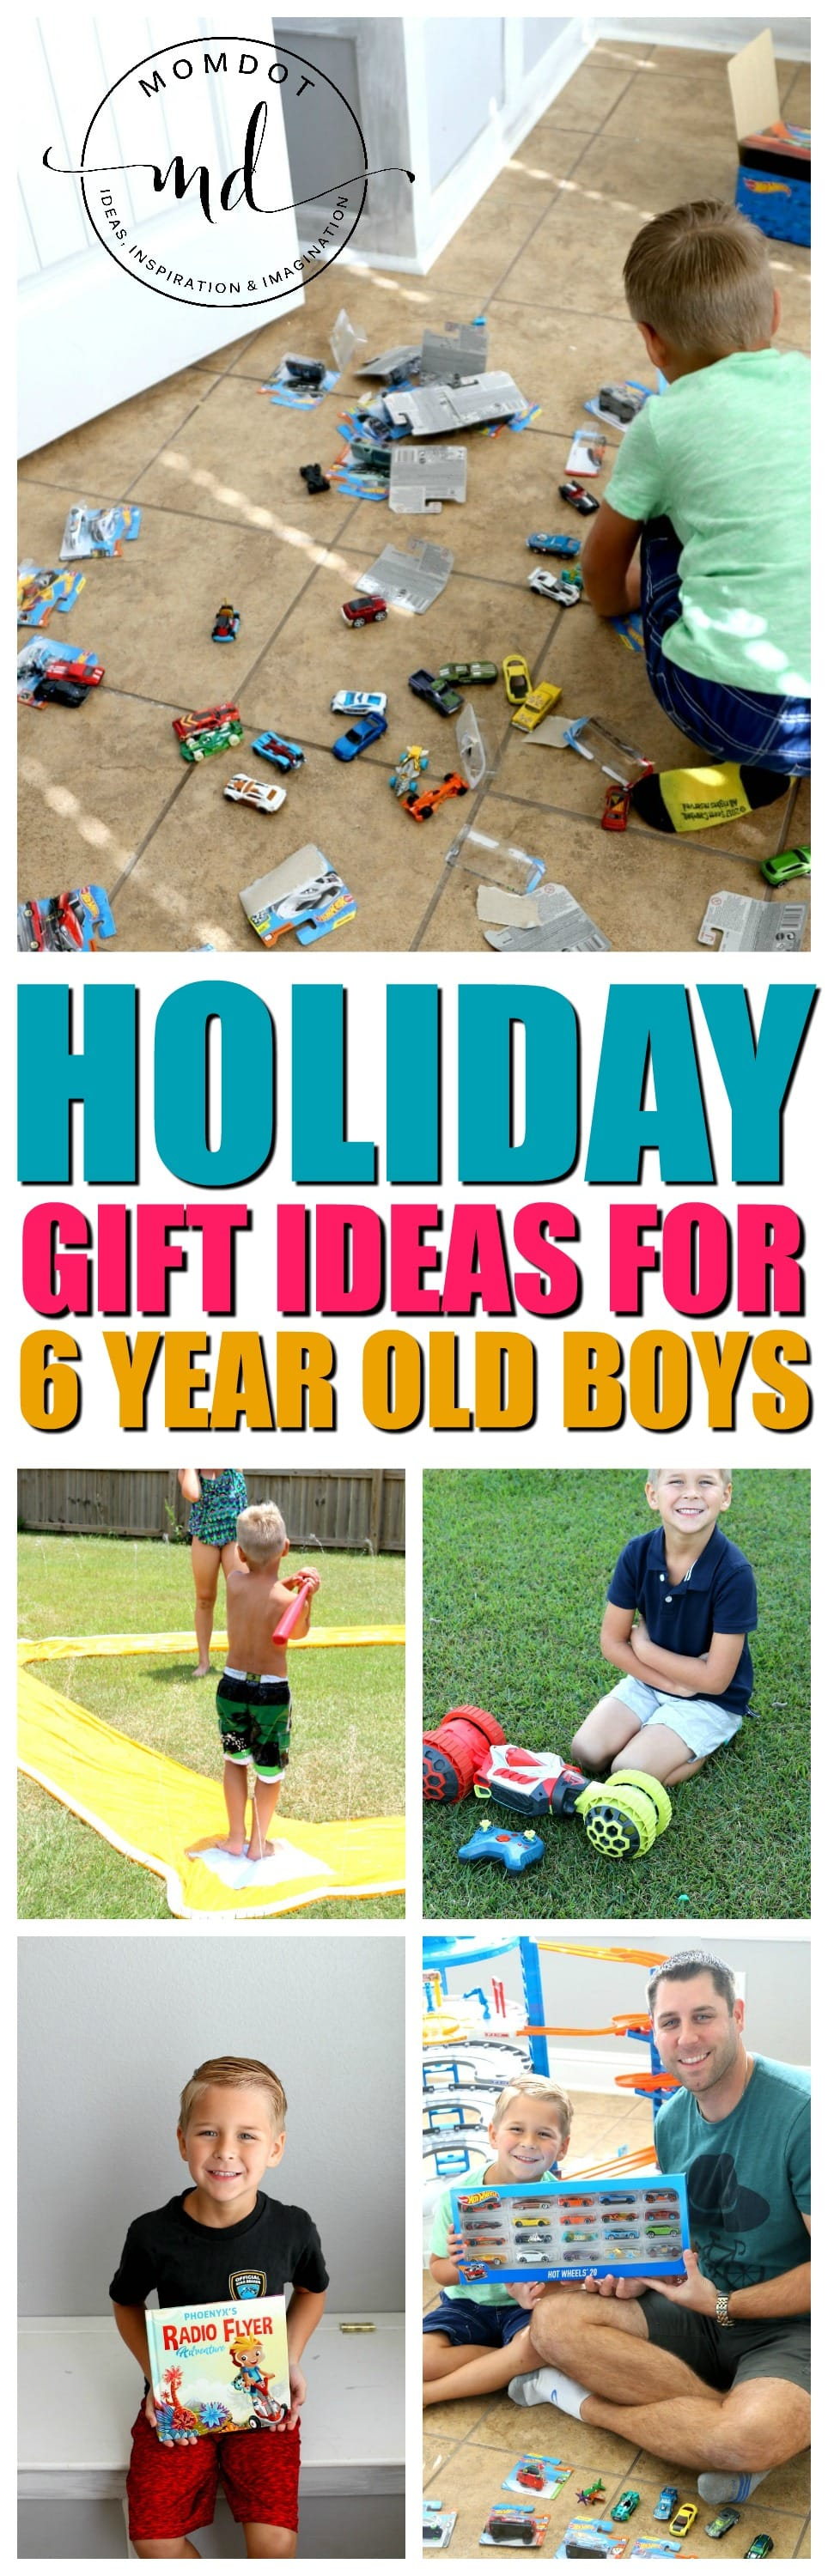 Gift Ideas for 6 Year Old Boys | 2017 Gifts